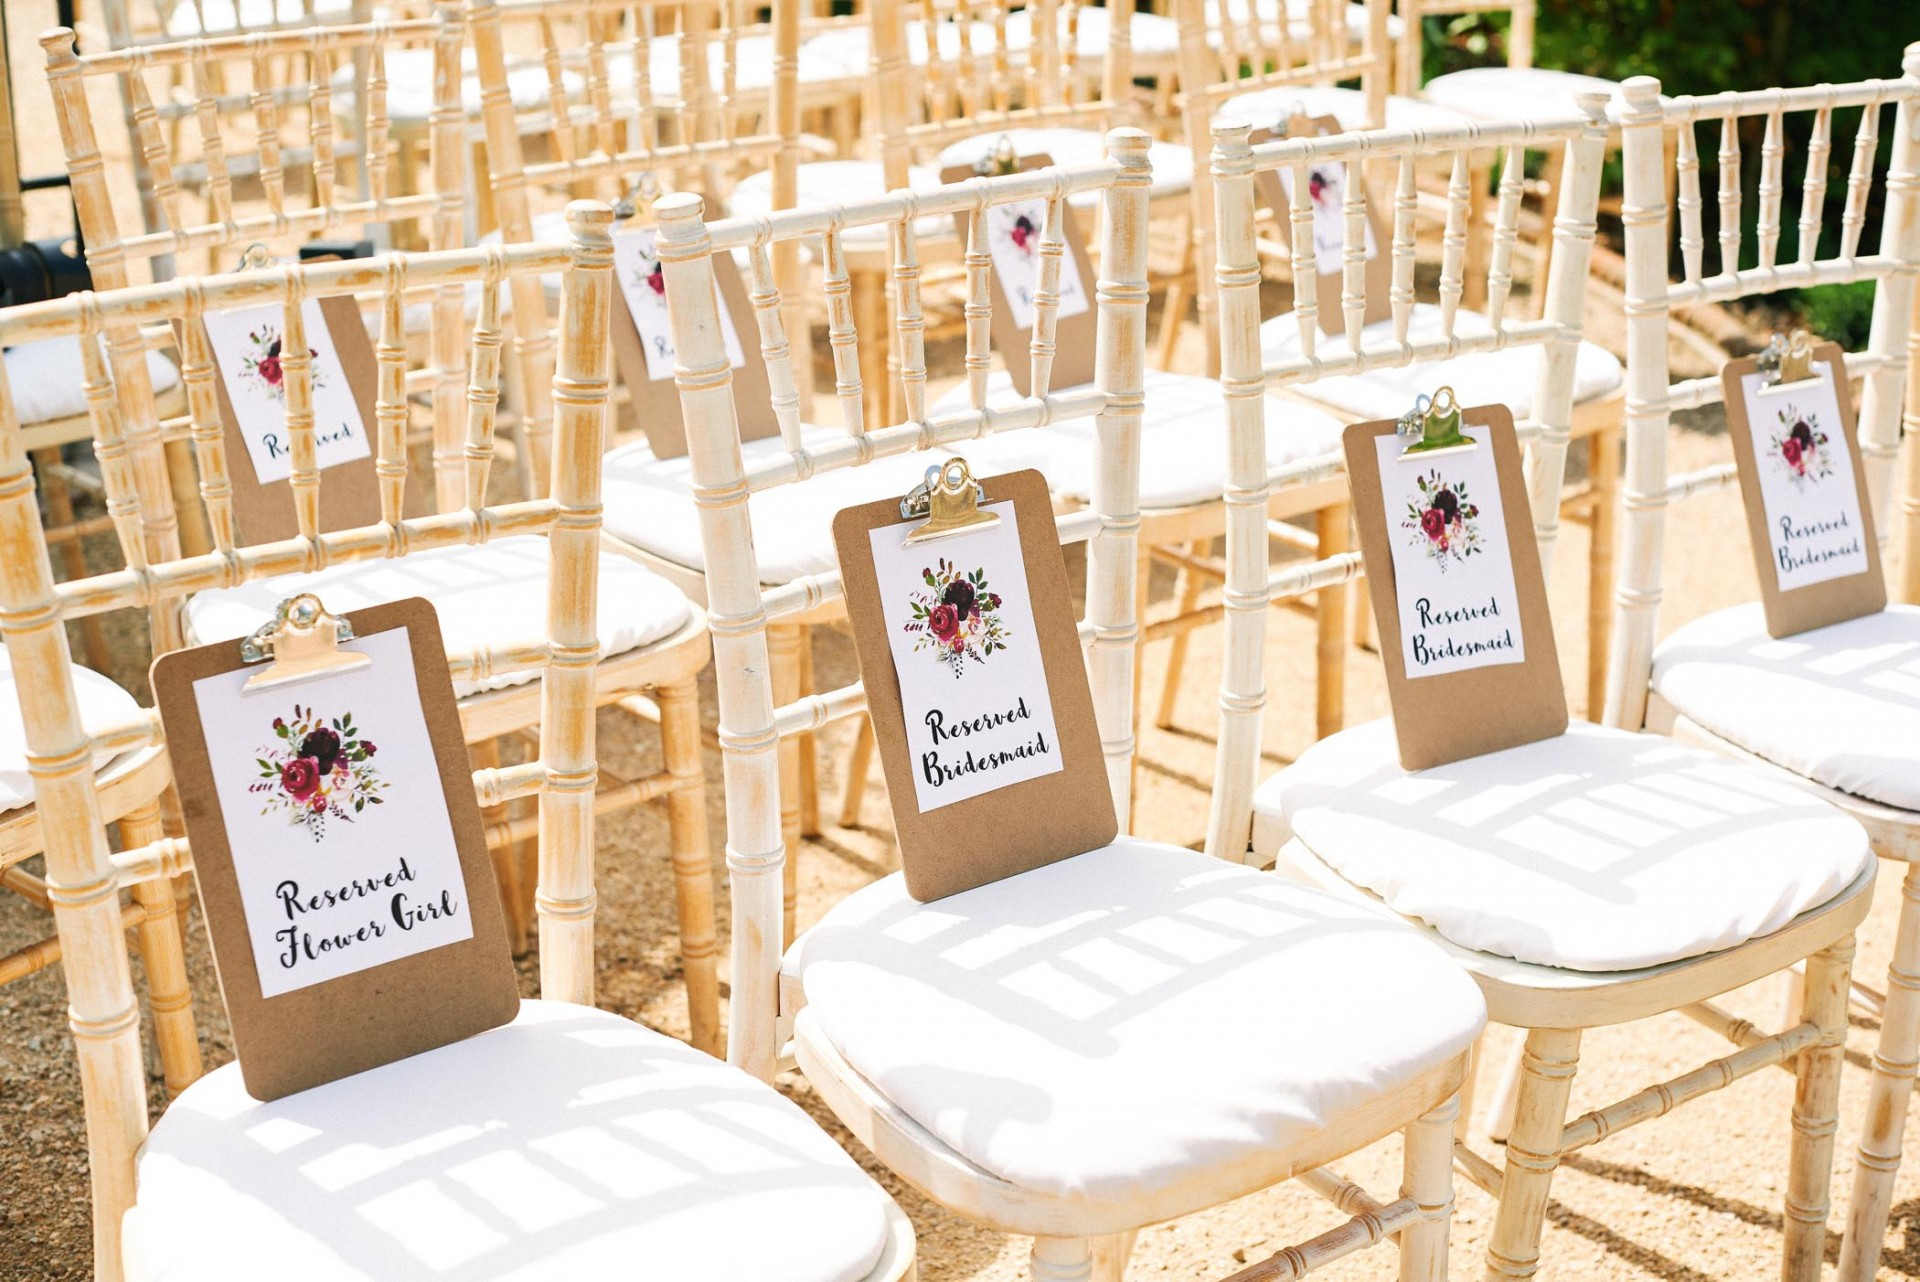 reserved seating clipboards on wooden wedding ceremony chairs